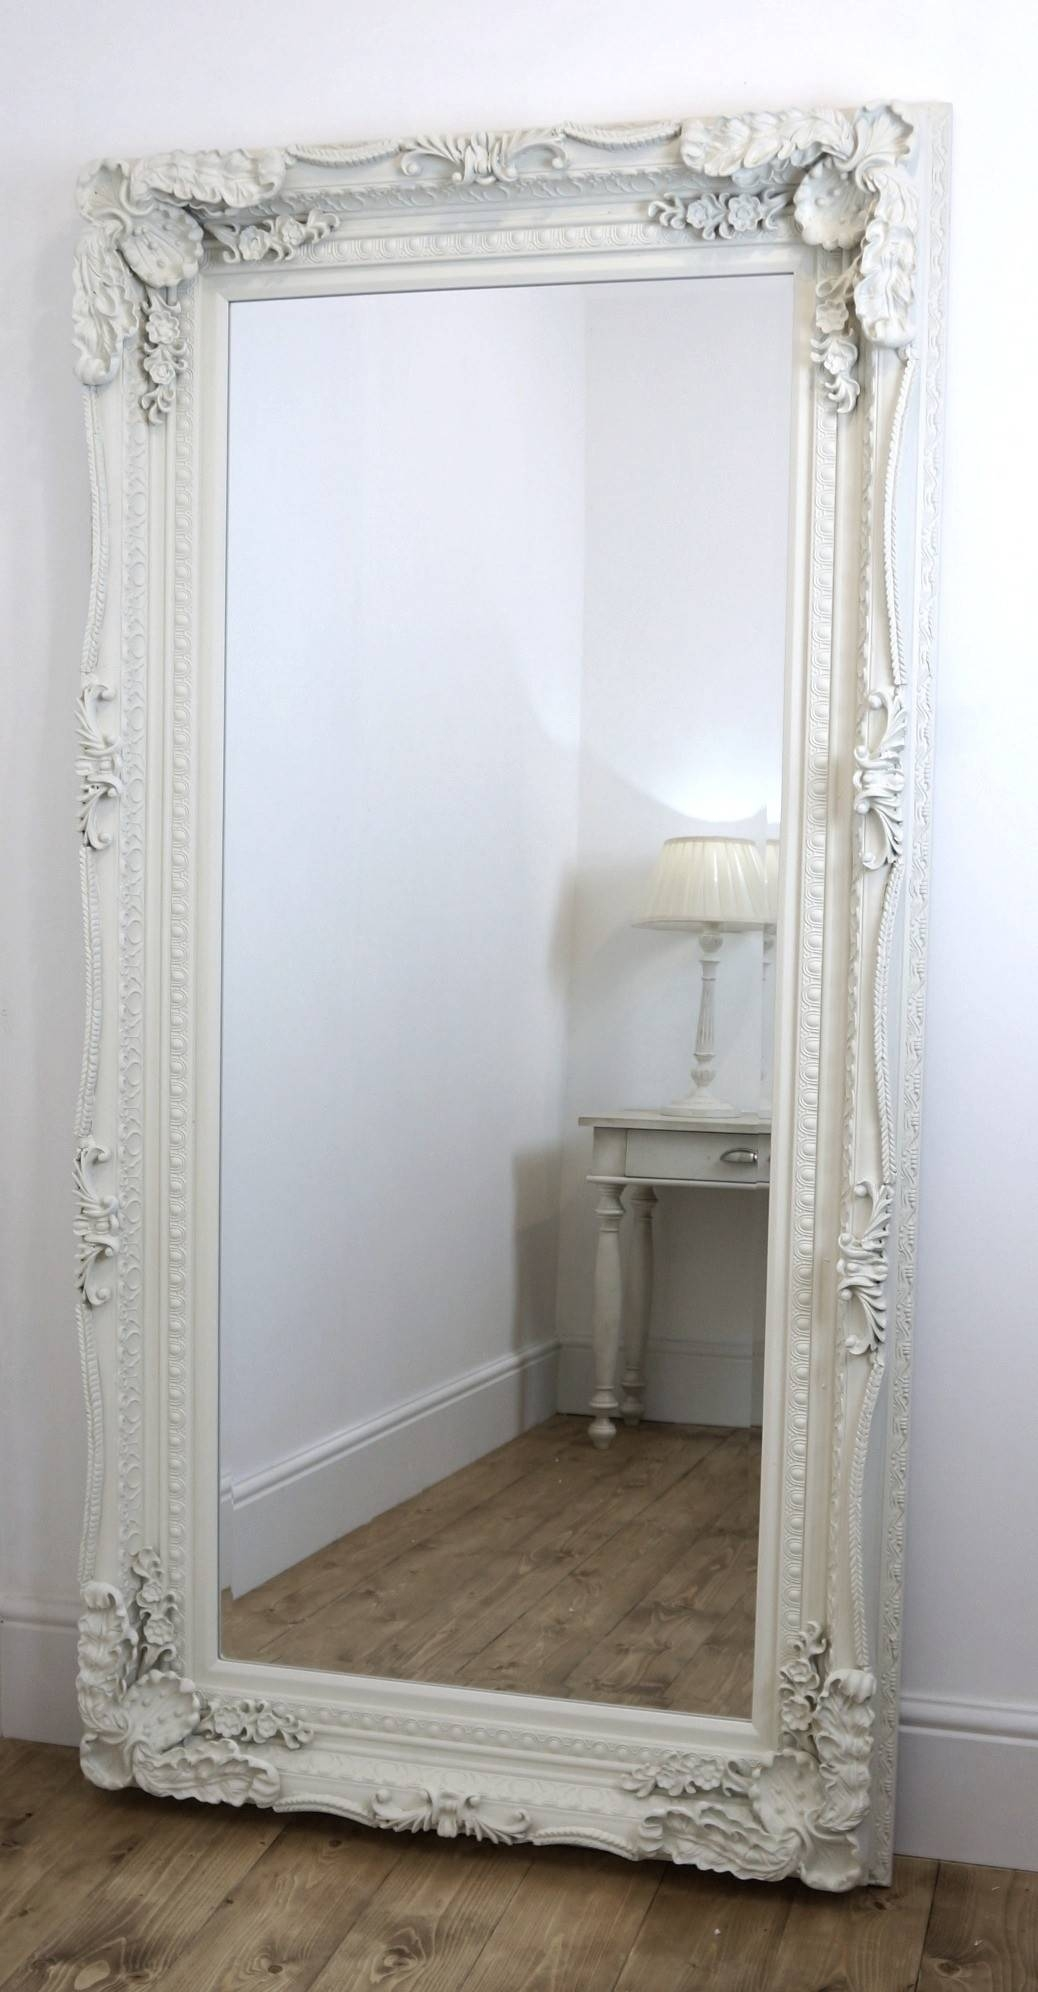 Furniture: Luxury Leaner Mirror For Home Accessories Ideas — Mtyp with regard to Cream Ornate Mirrors (Image 6 of 25)